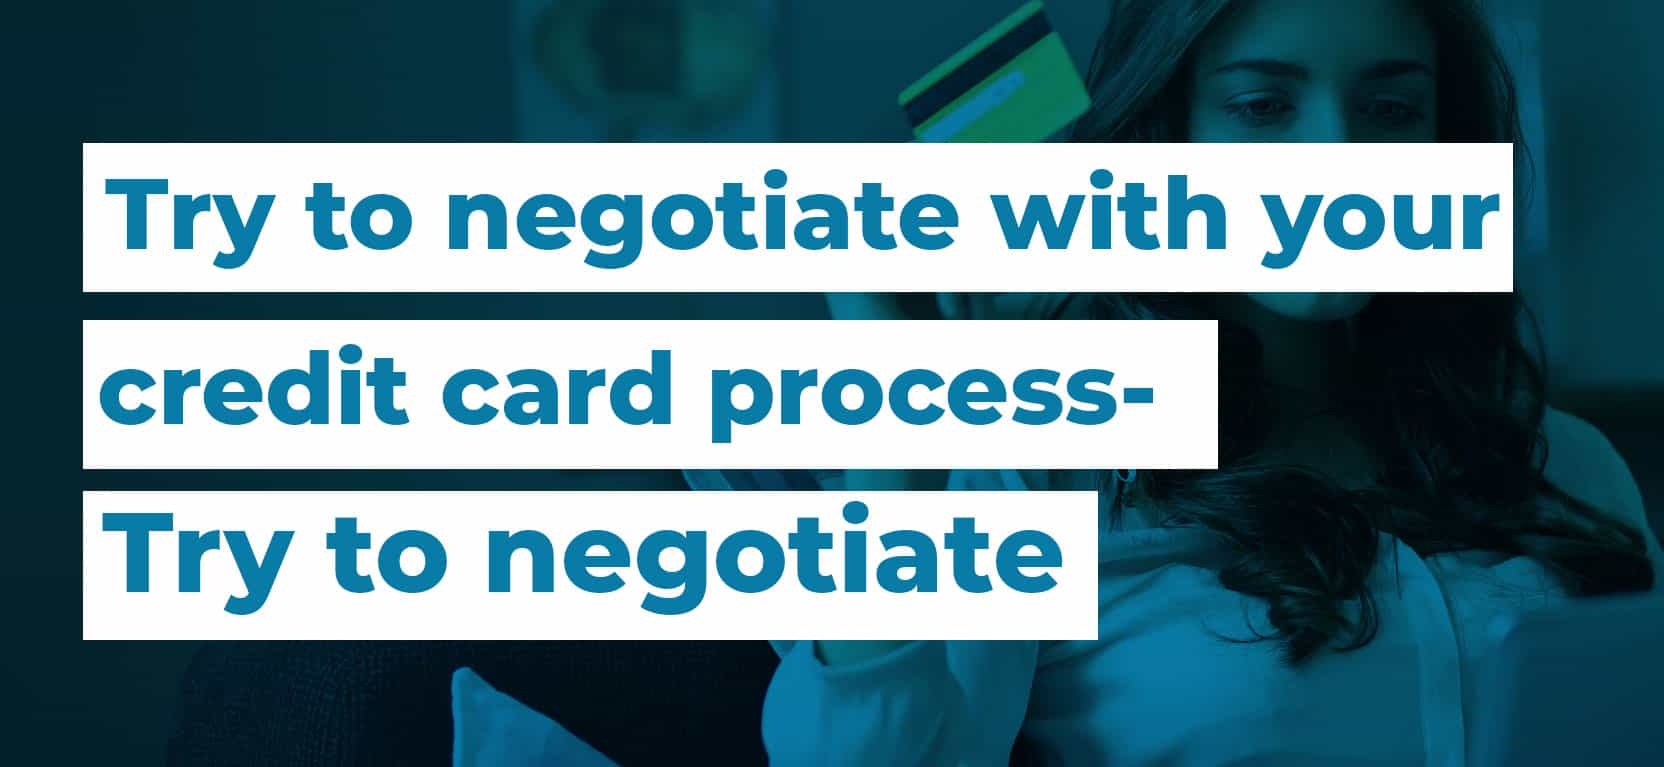 44 Try to negotiate with your credit card processing agencies